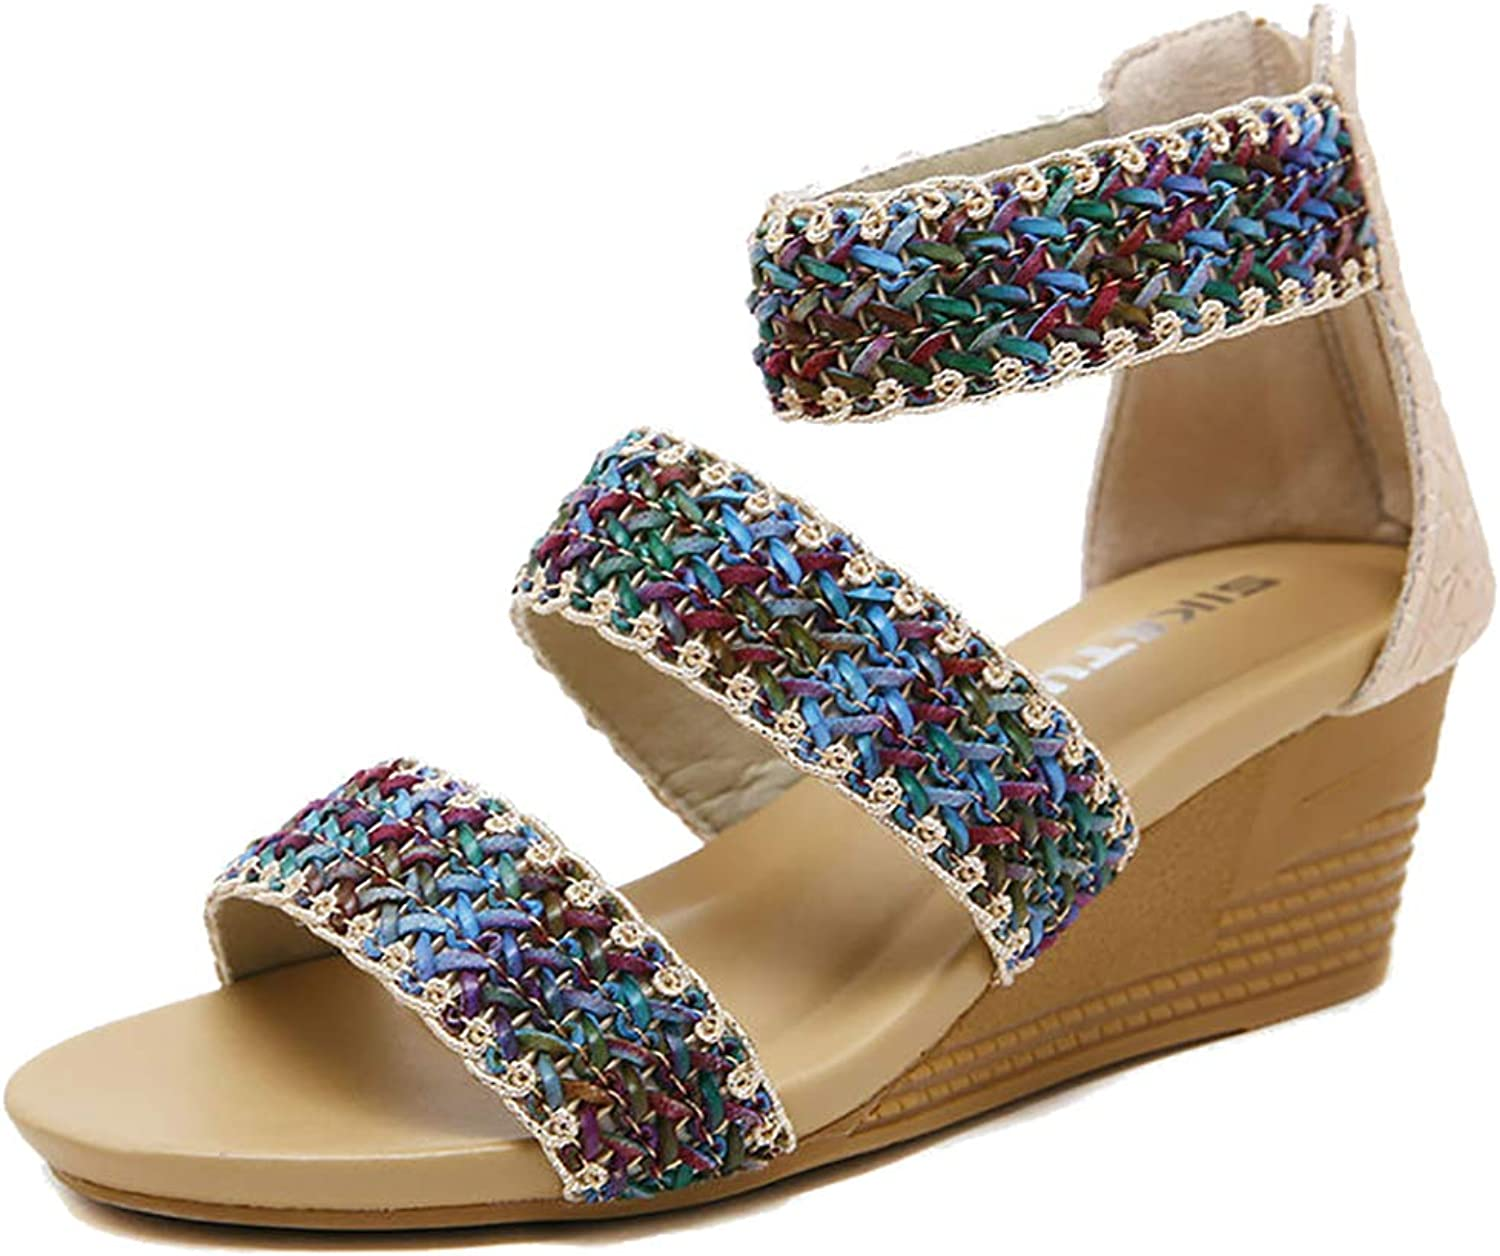 Odema Women's Bohemian Mid Heel Wedge Sandals Back Zipper Ankle Strap Sandals